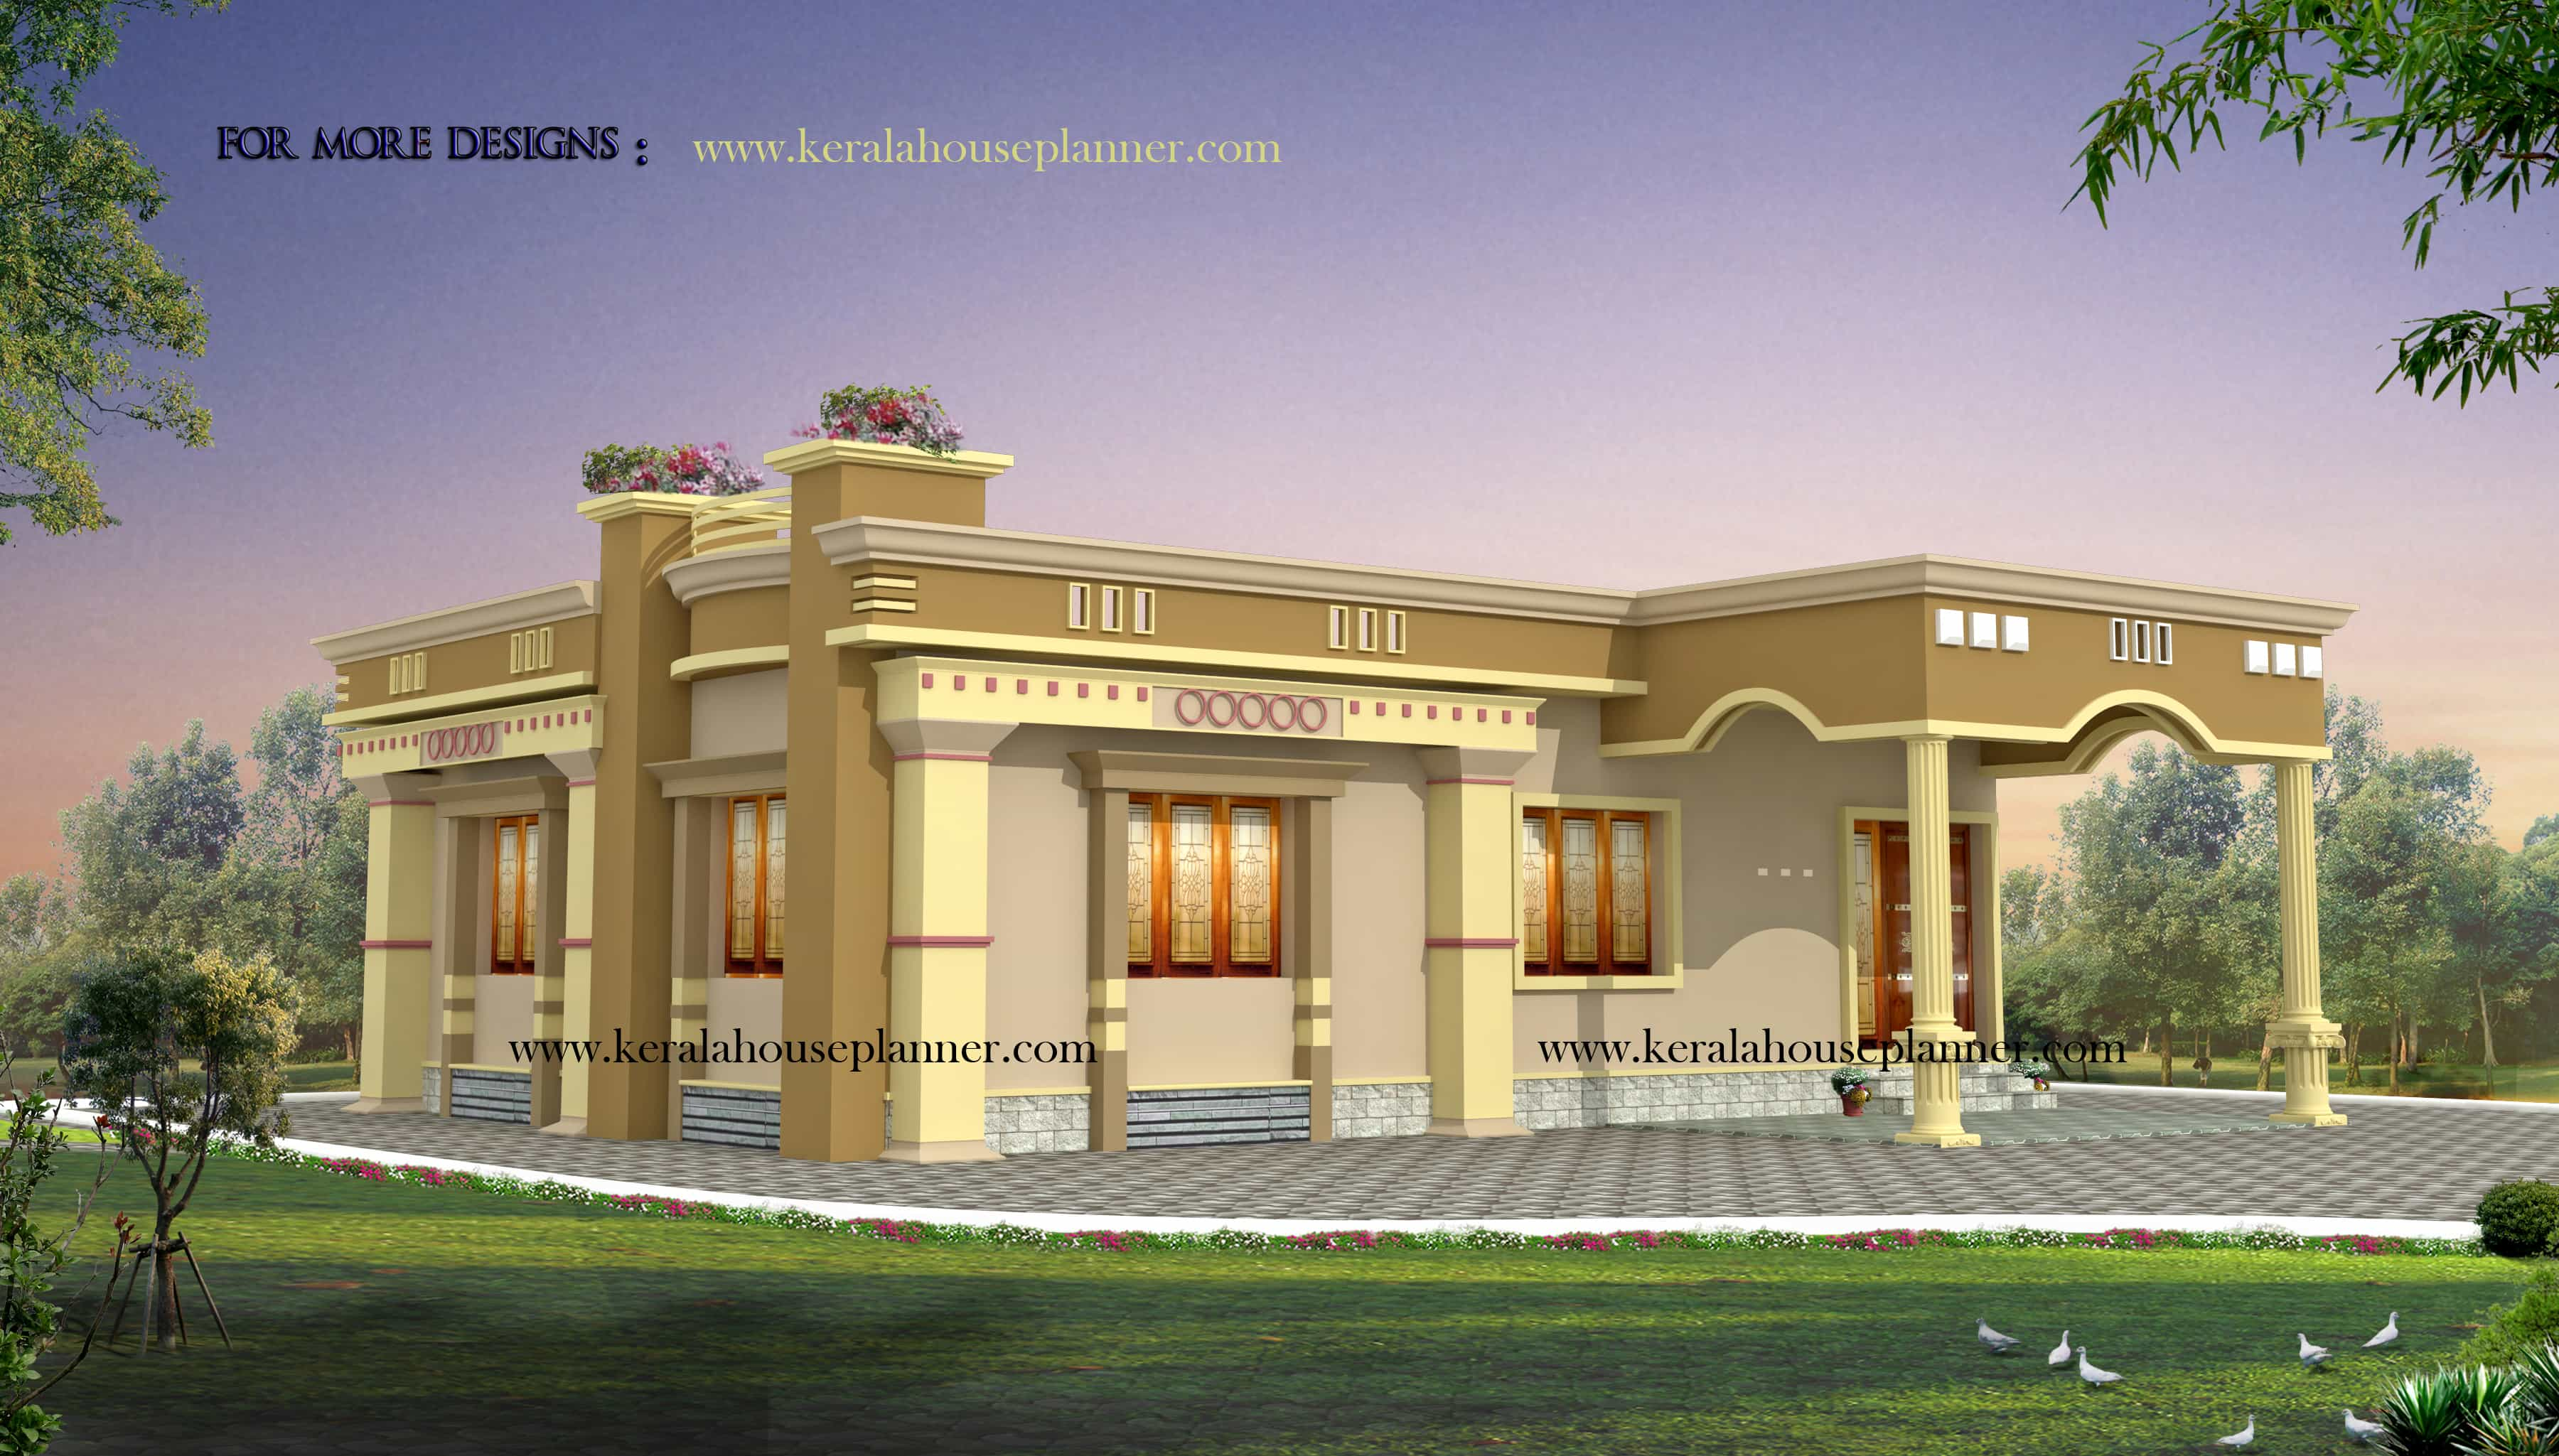 Kerala house plans 1200 sq ft with photos khp for Kerala house designs and plans